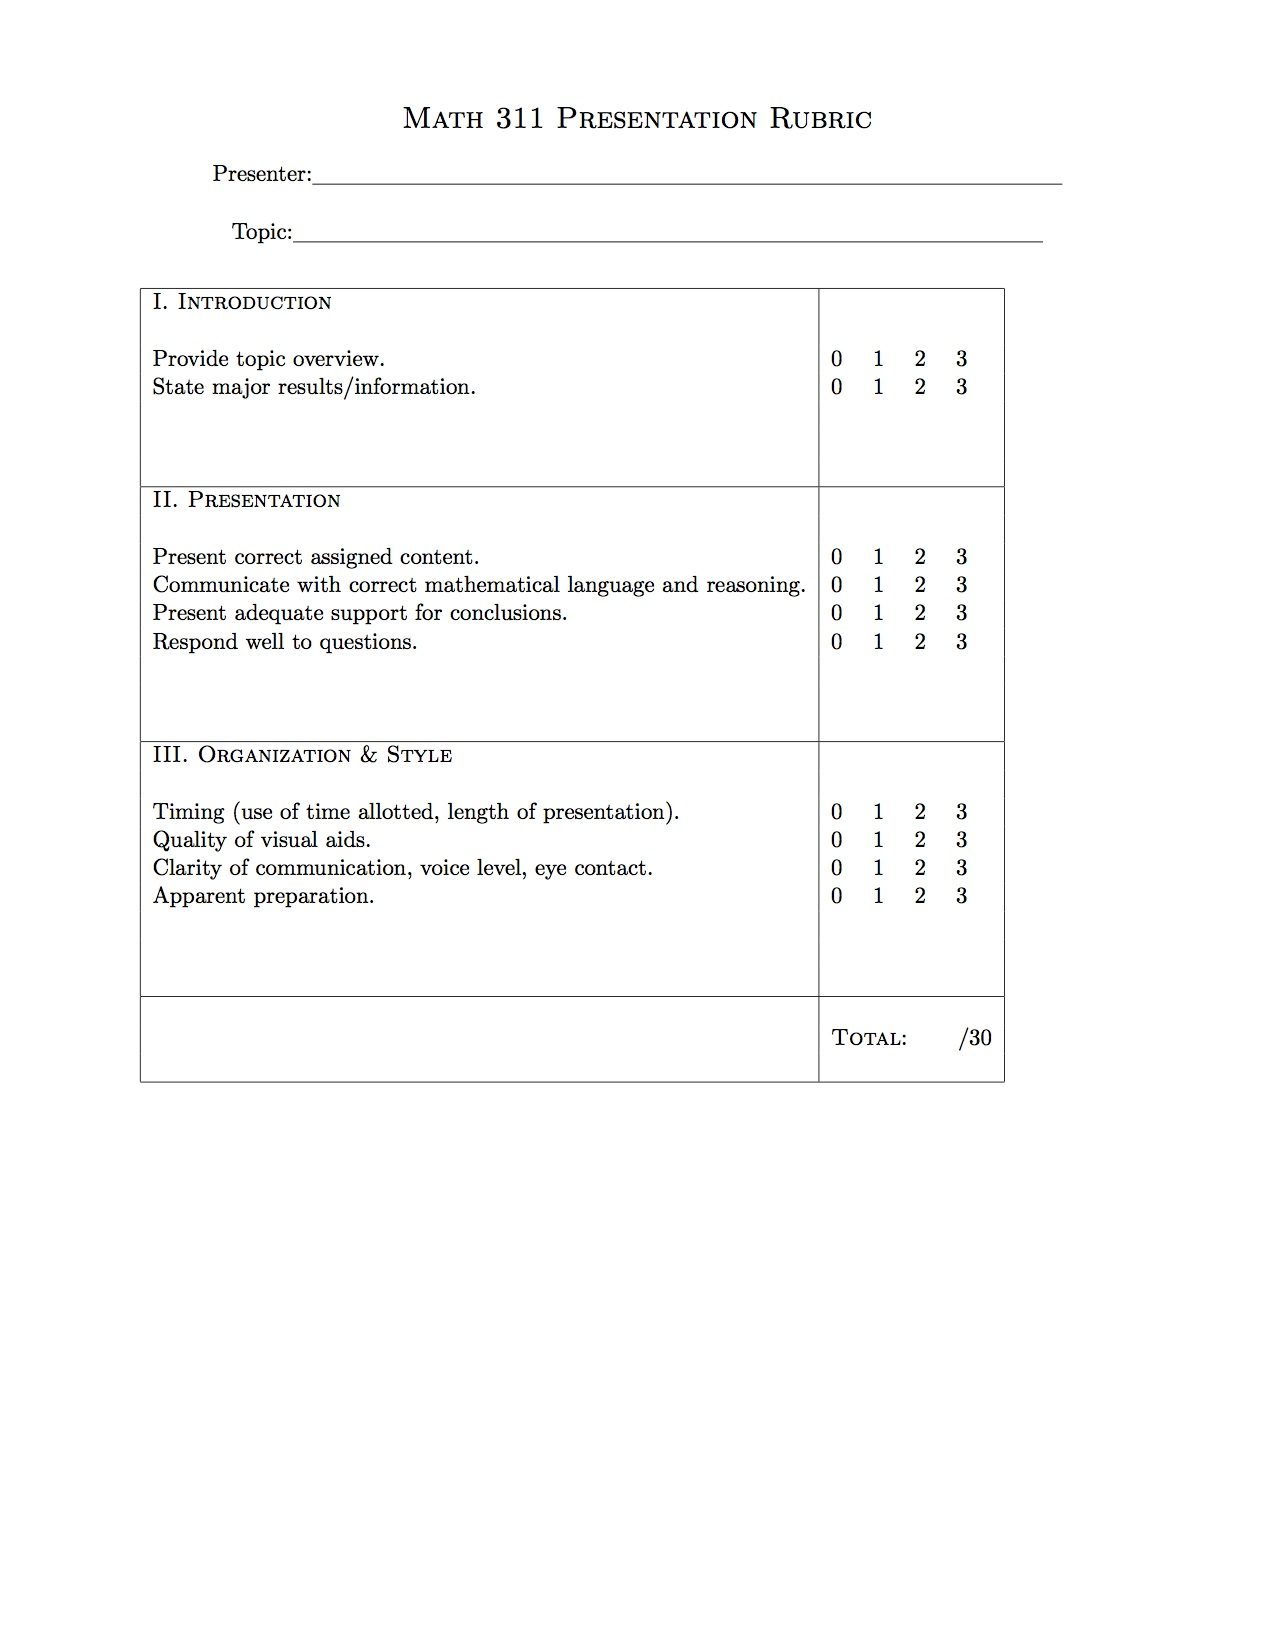 anna haensch math 311 number theory presentation rubric